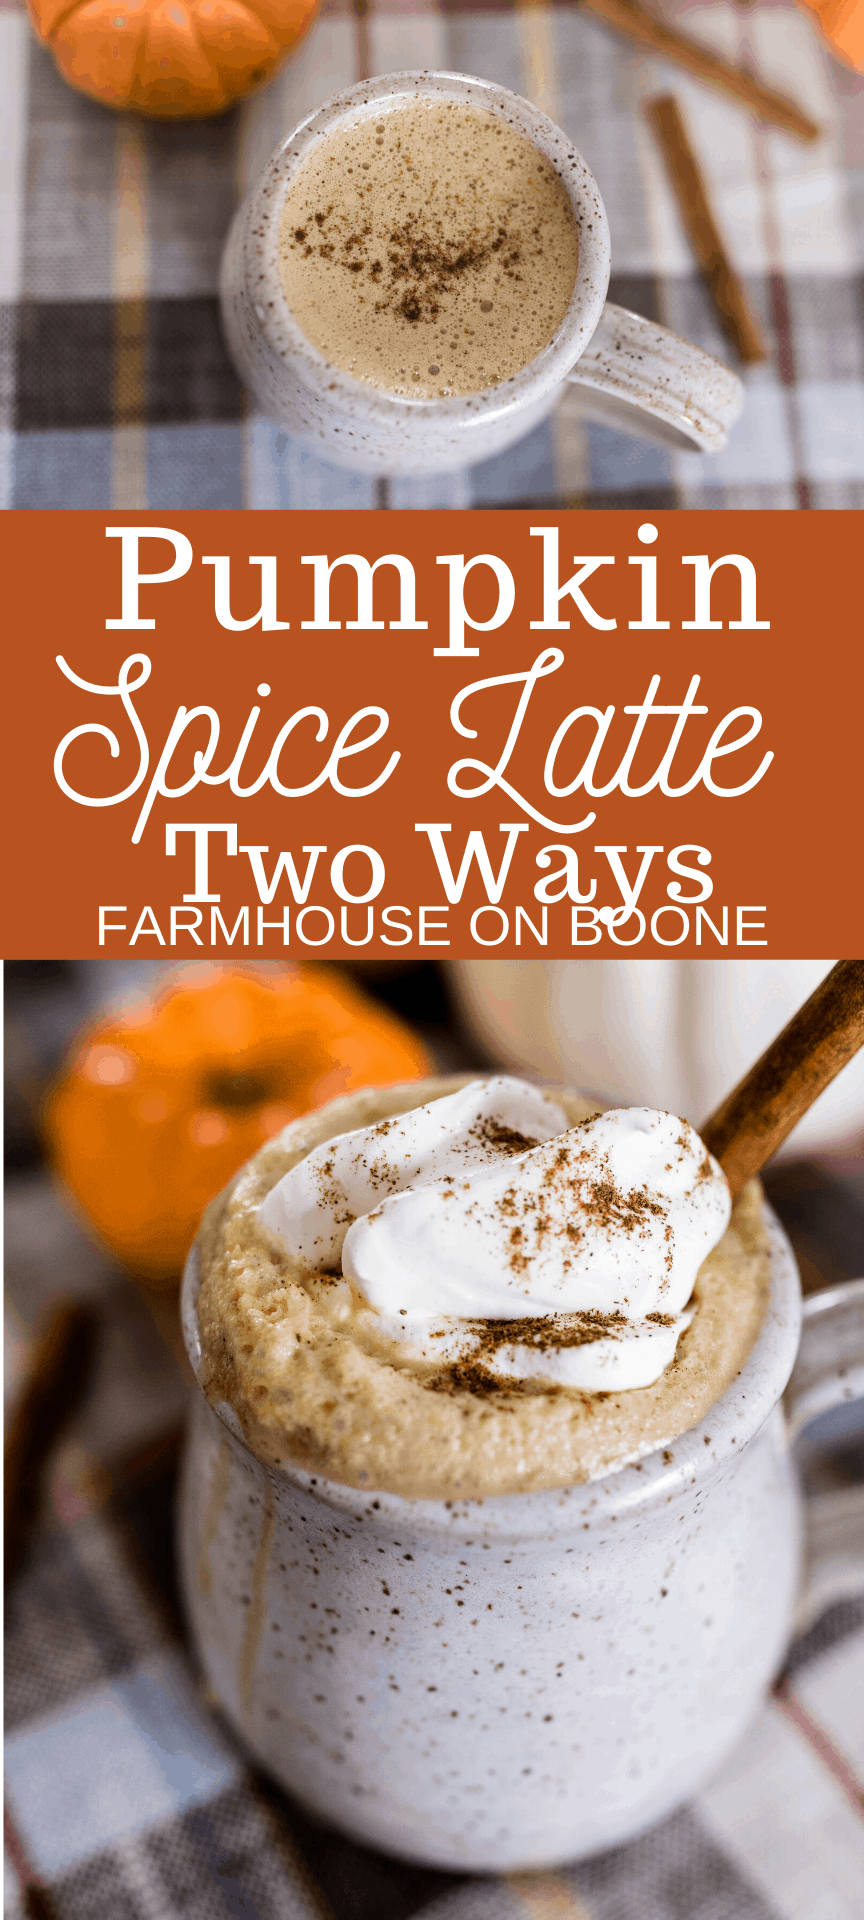 two pictures of homemade pumpkin spice lattes topped with pumpkin spice with pumpkins behind